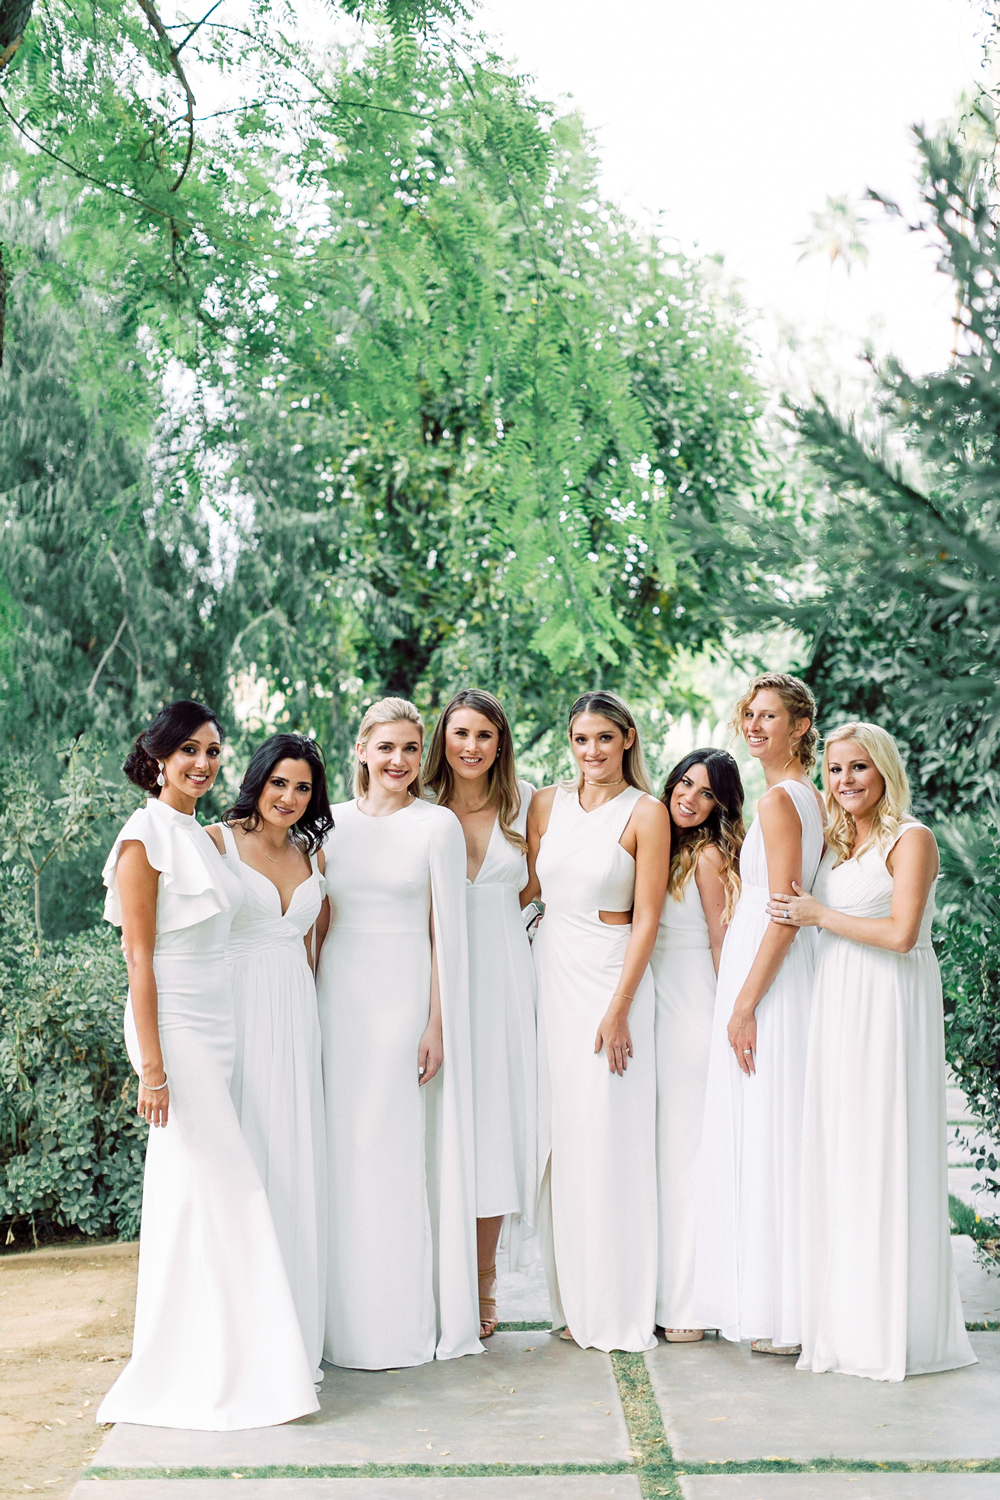 26 Chic Bridal Parties Wearing All White Dresses Martha